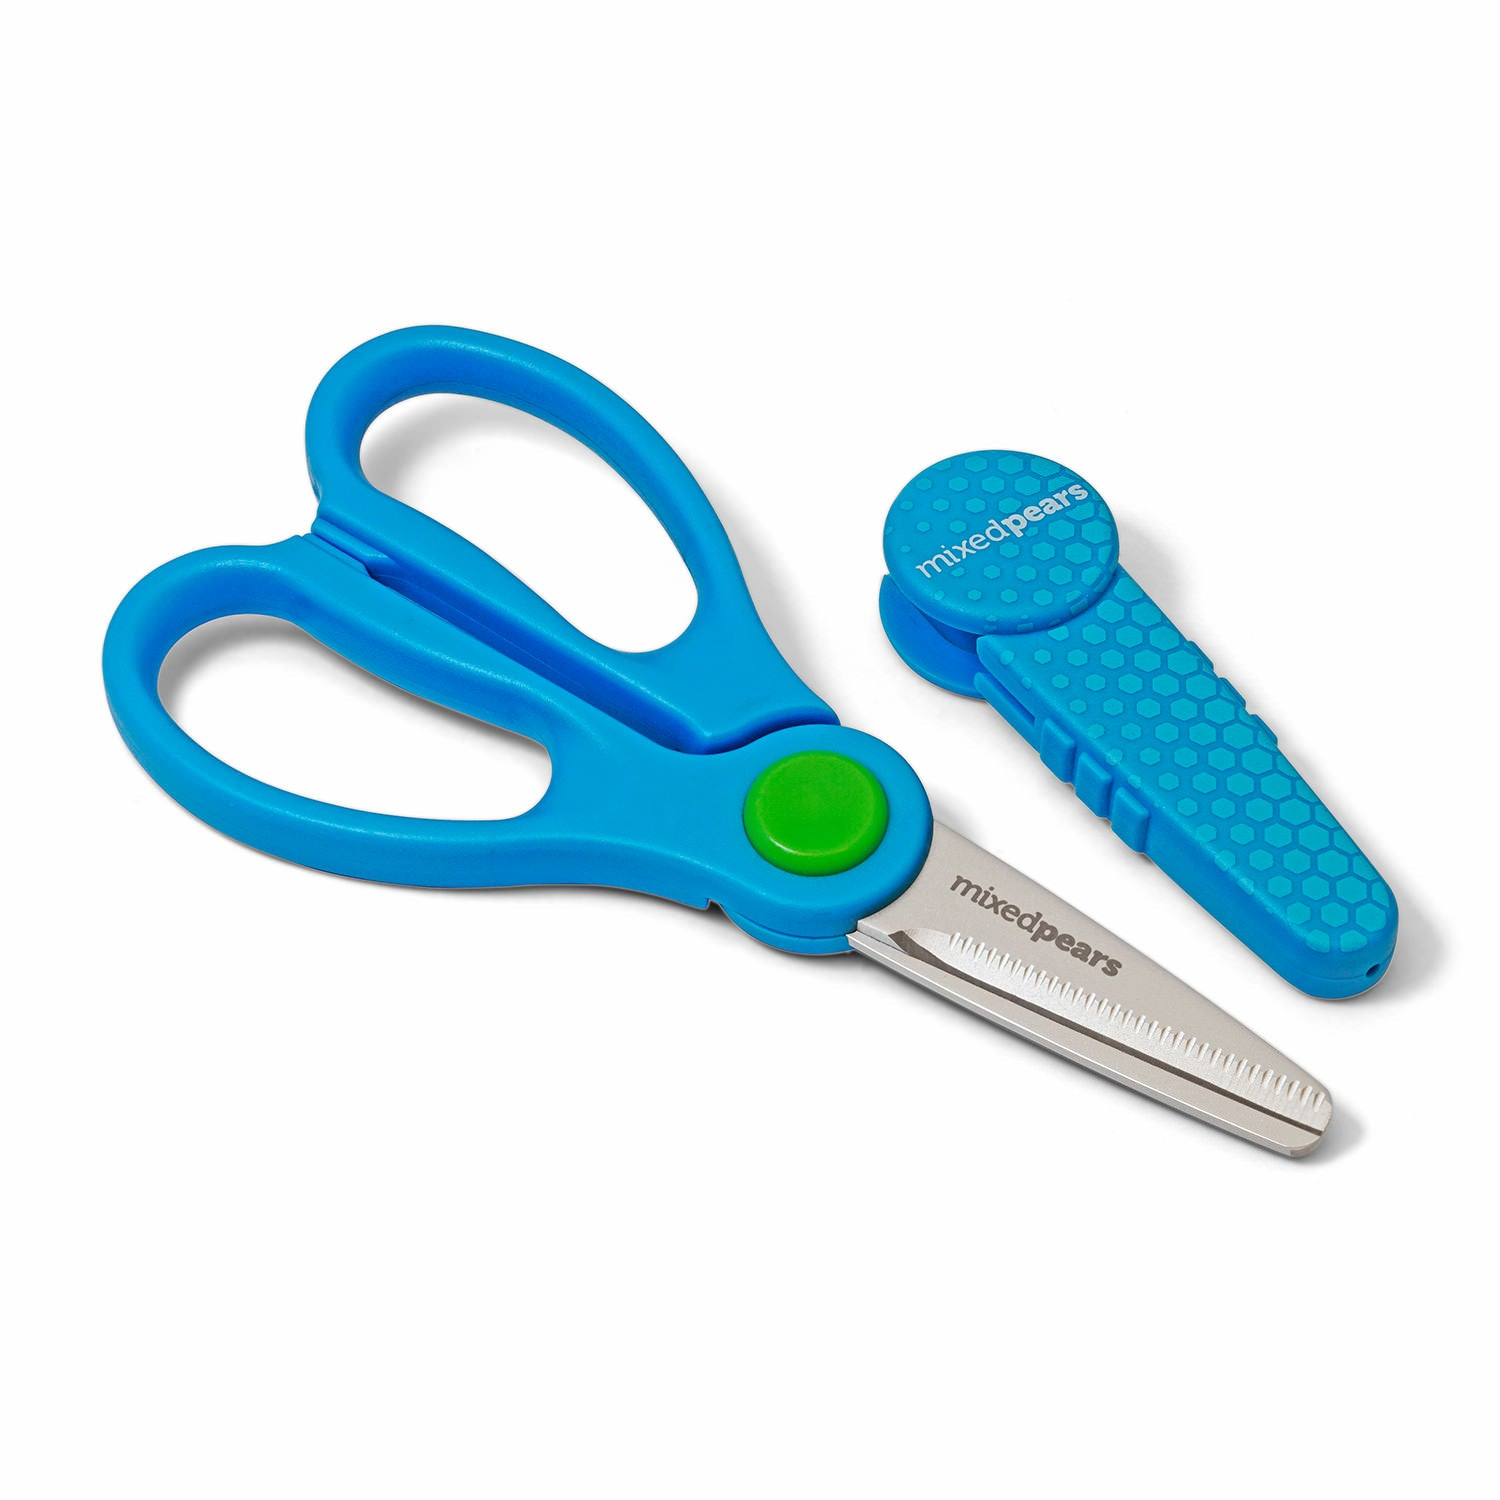 BiteSizers Portable Food Scissors - Blue Hex